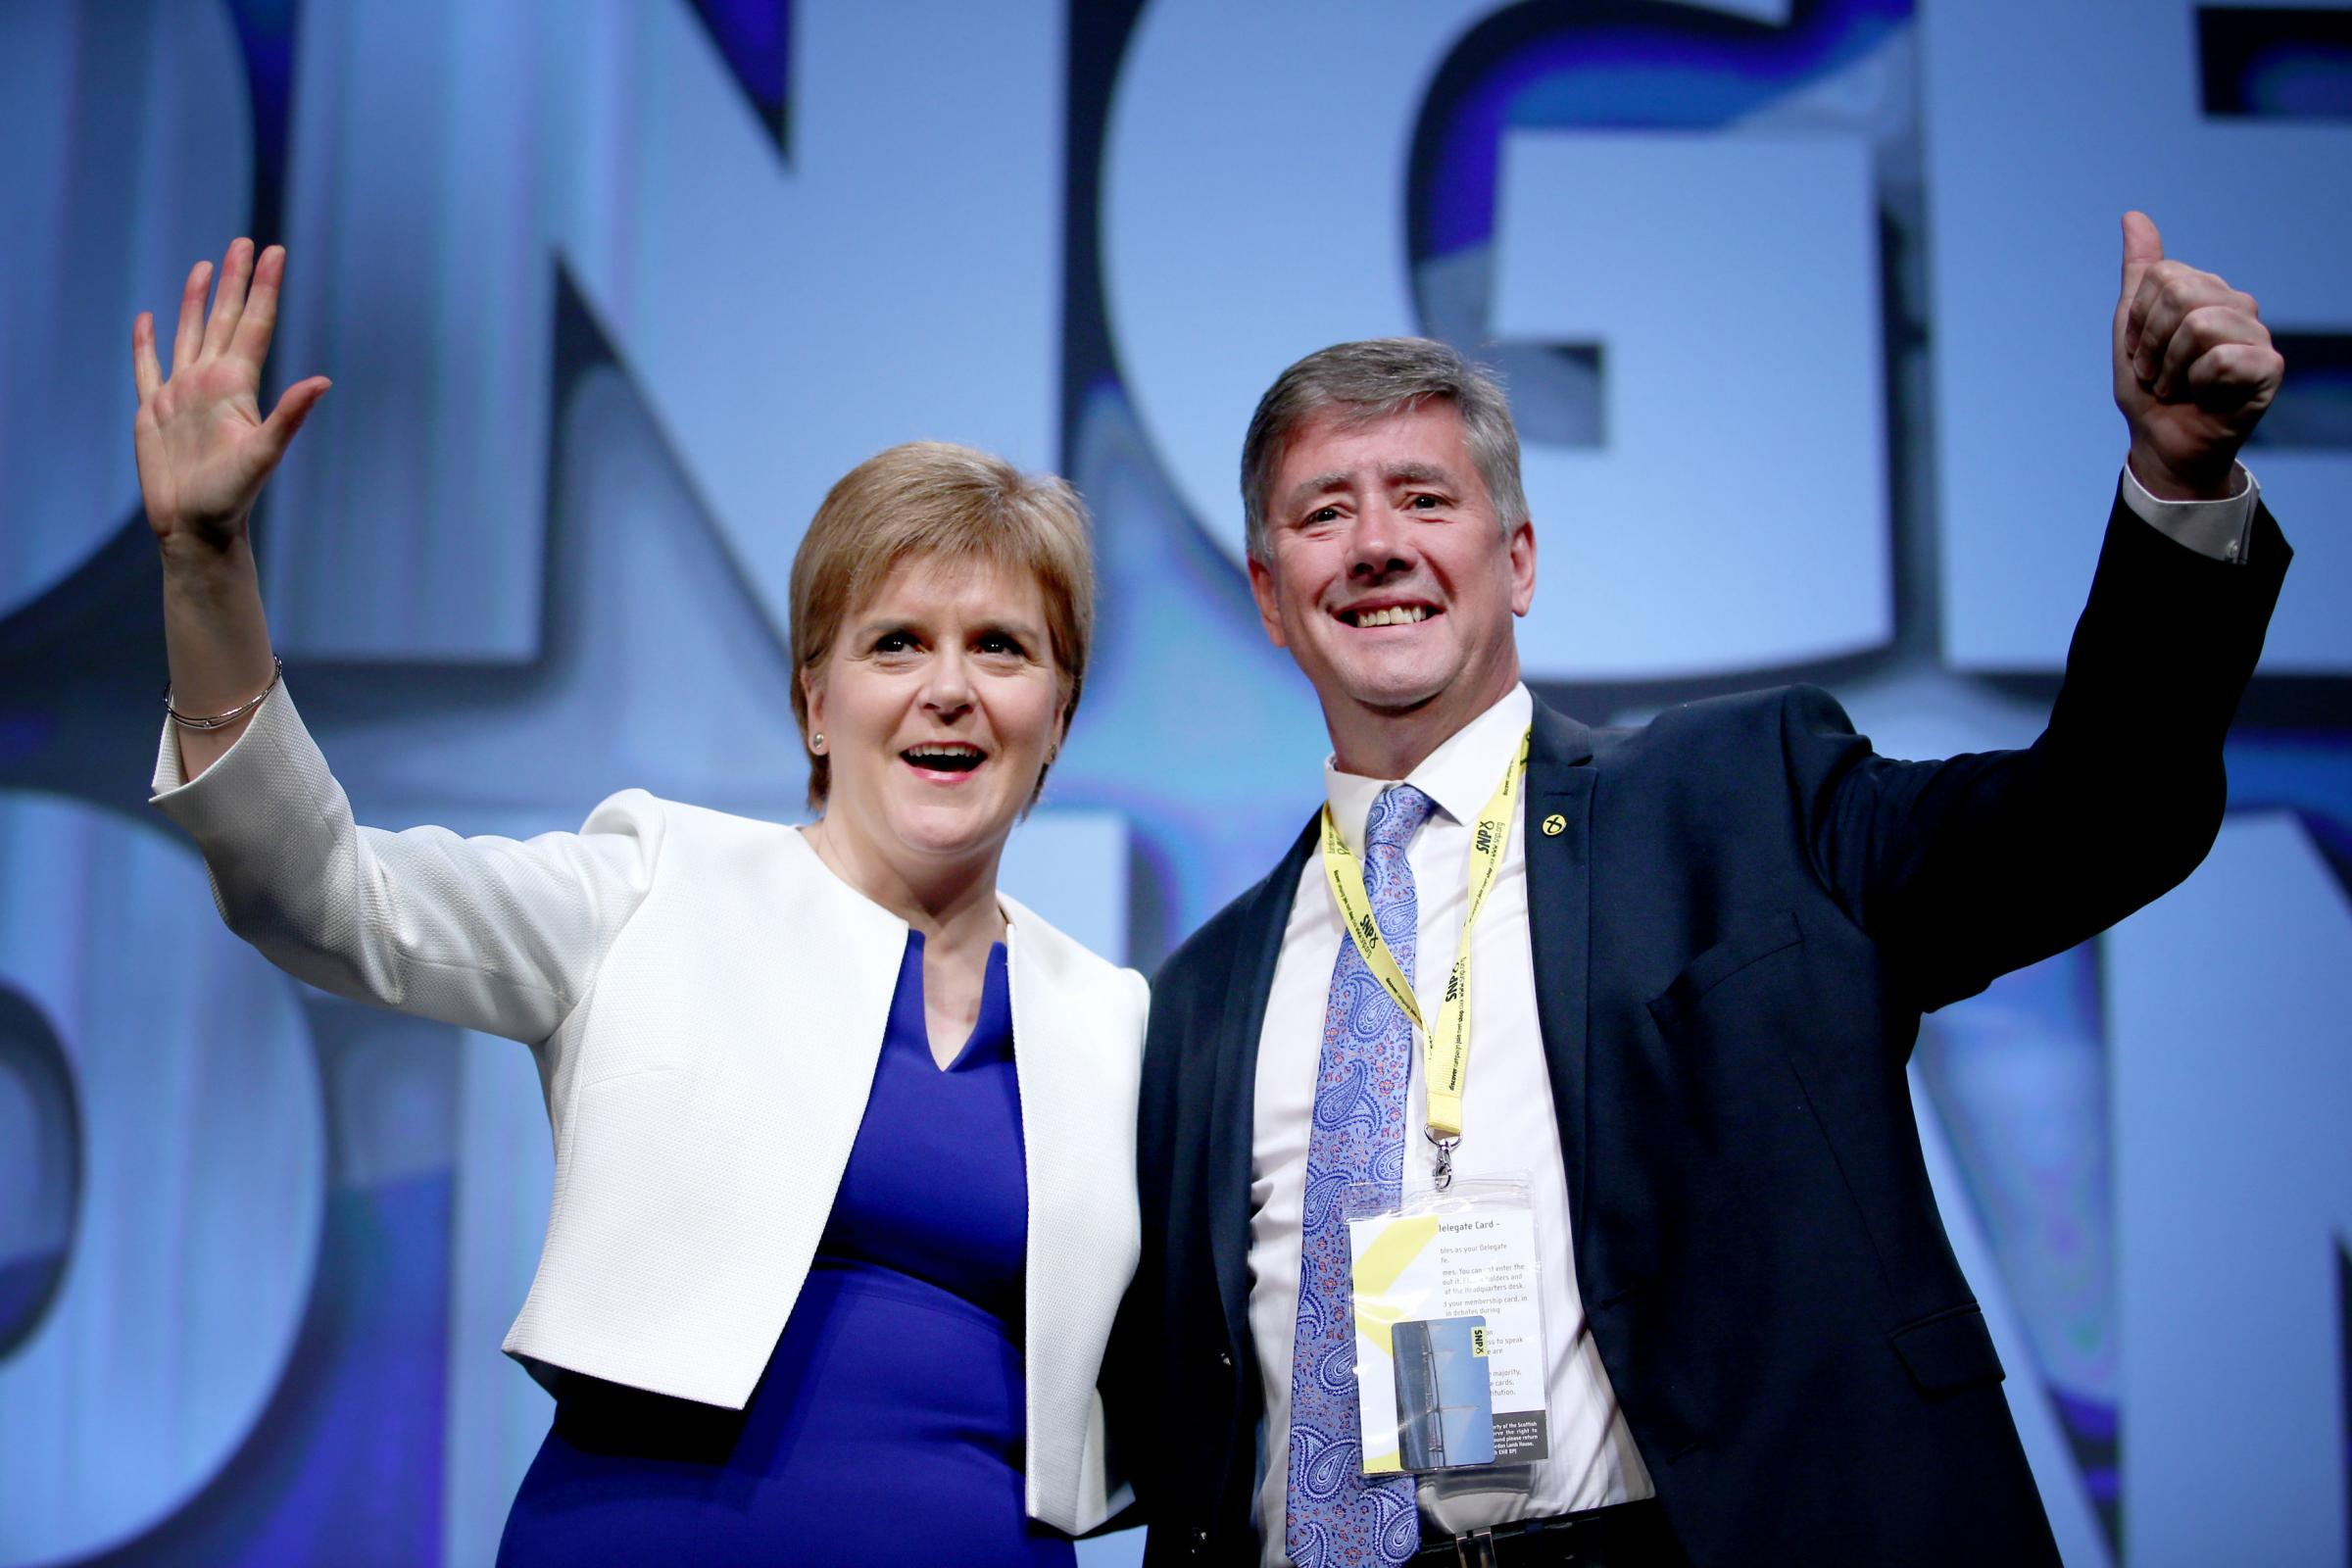 Scotland 'will not accept Westminster veto' over independence referendum